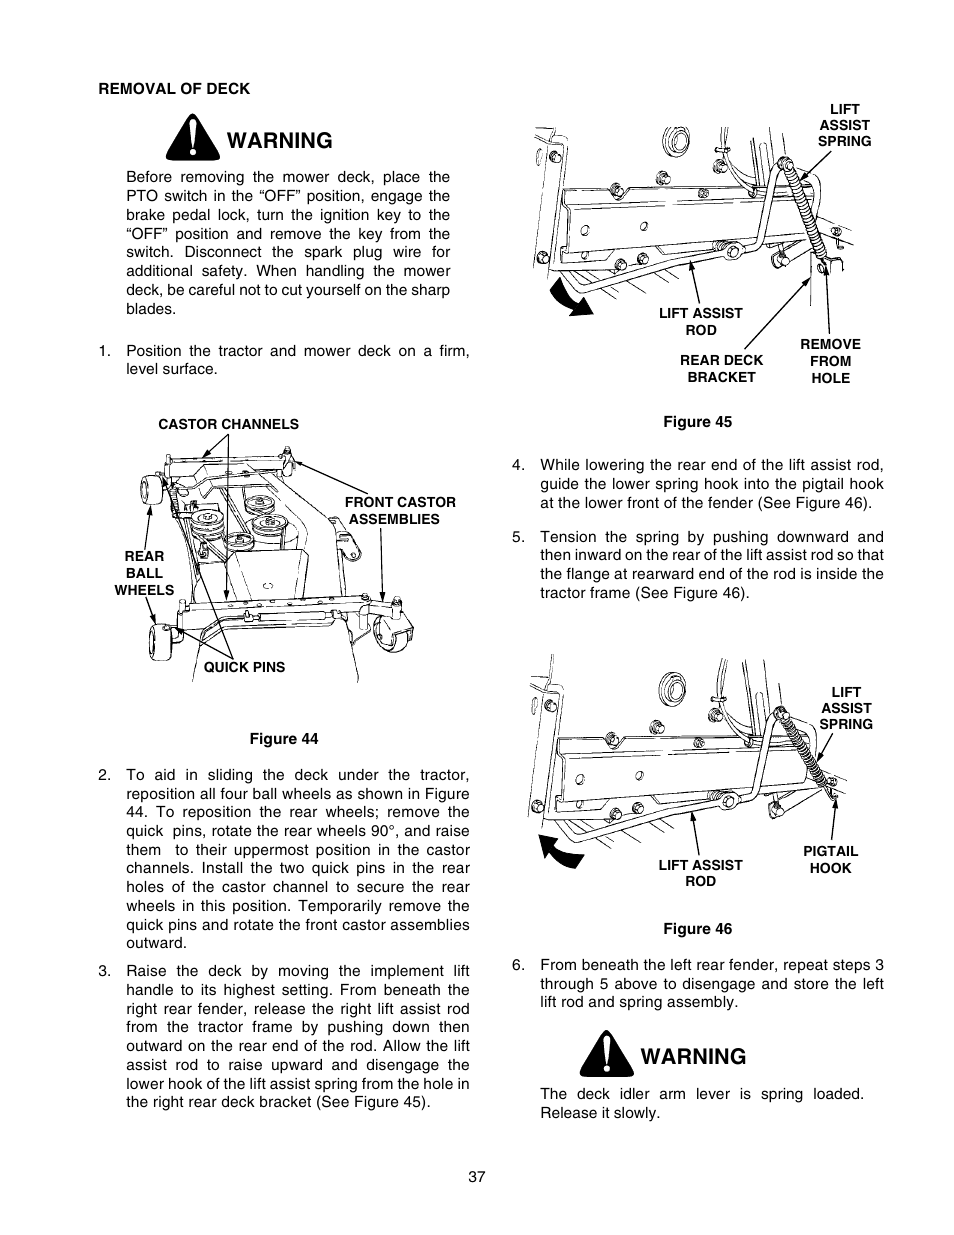 2206 Cub Cadet Wiring Diagram Another Blog About Mower Warning User Manual Page 37 60 Original Mode Rh Manualsdir Com